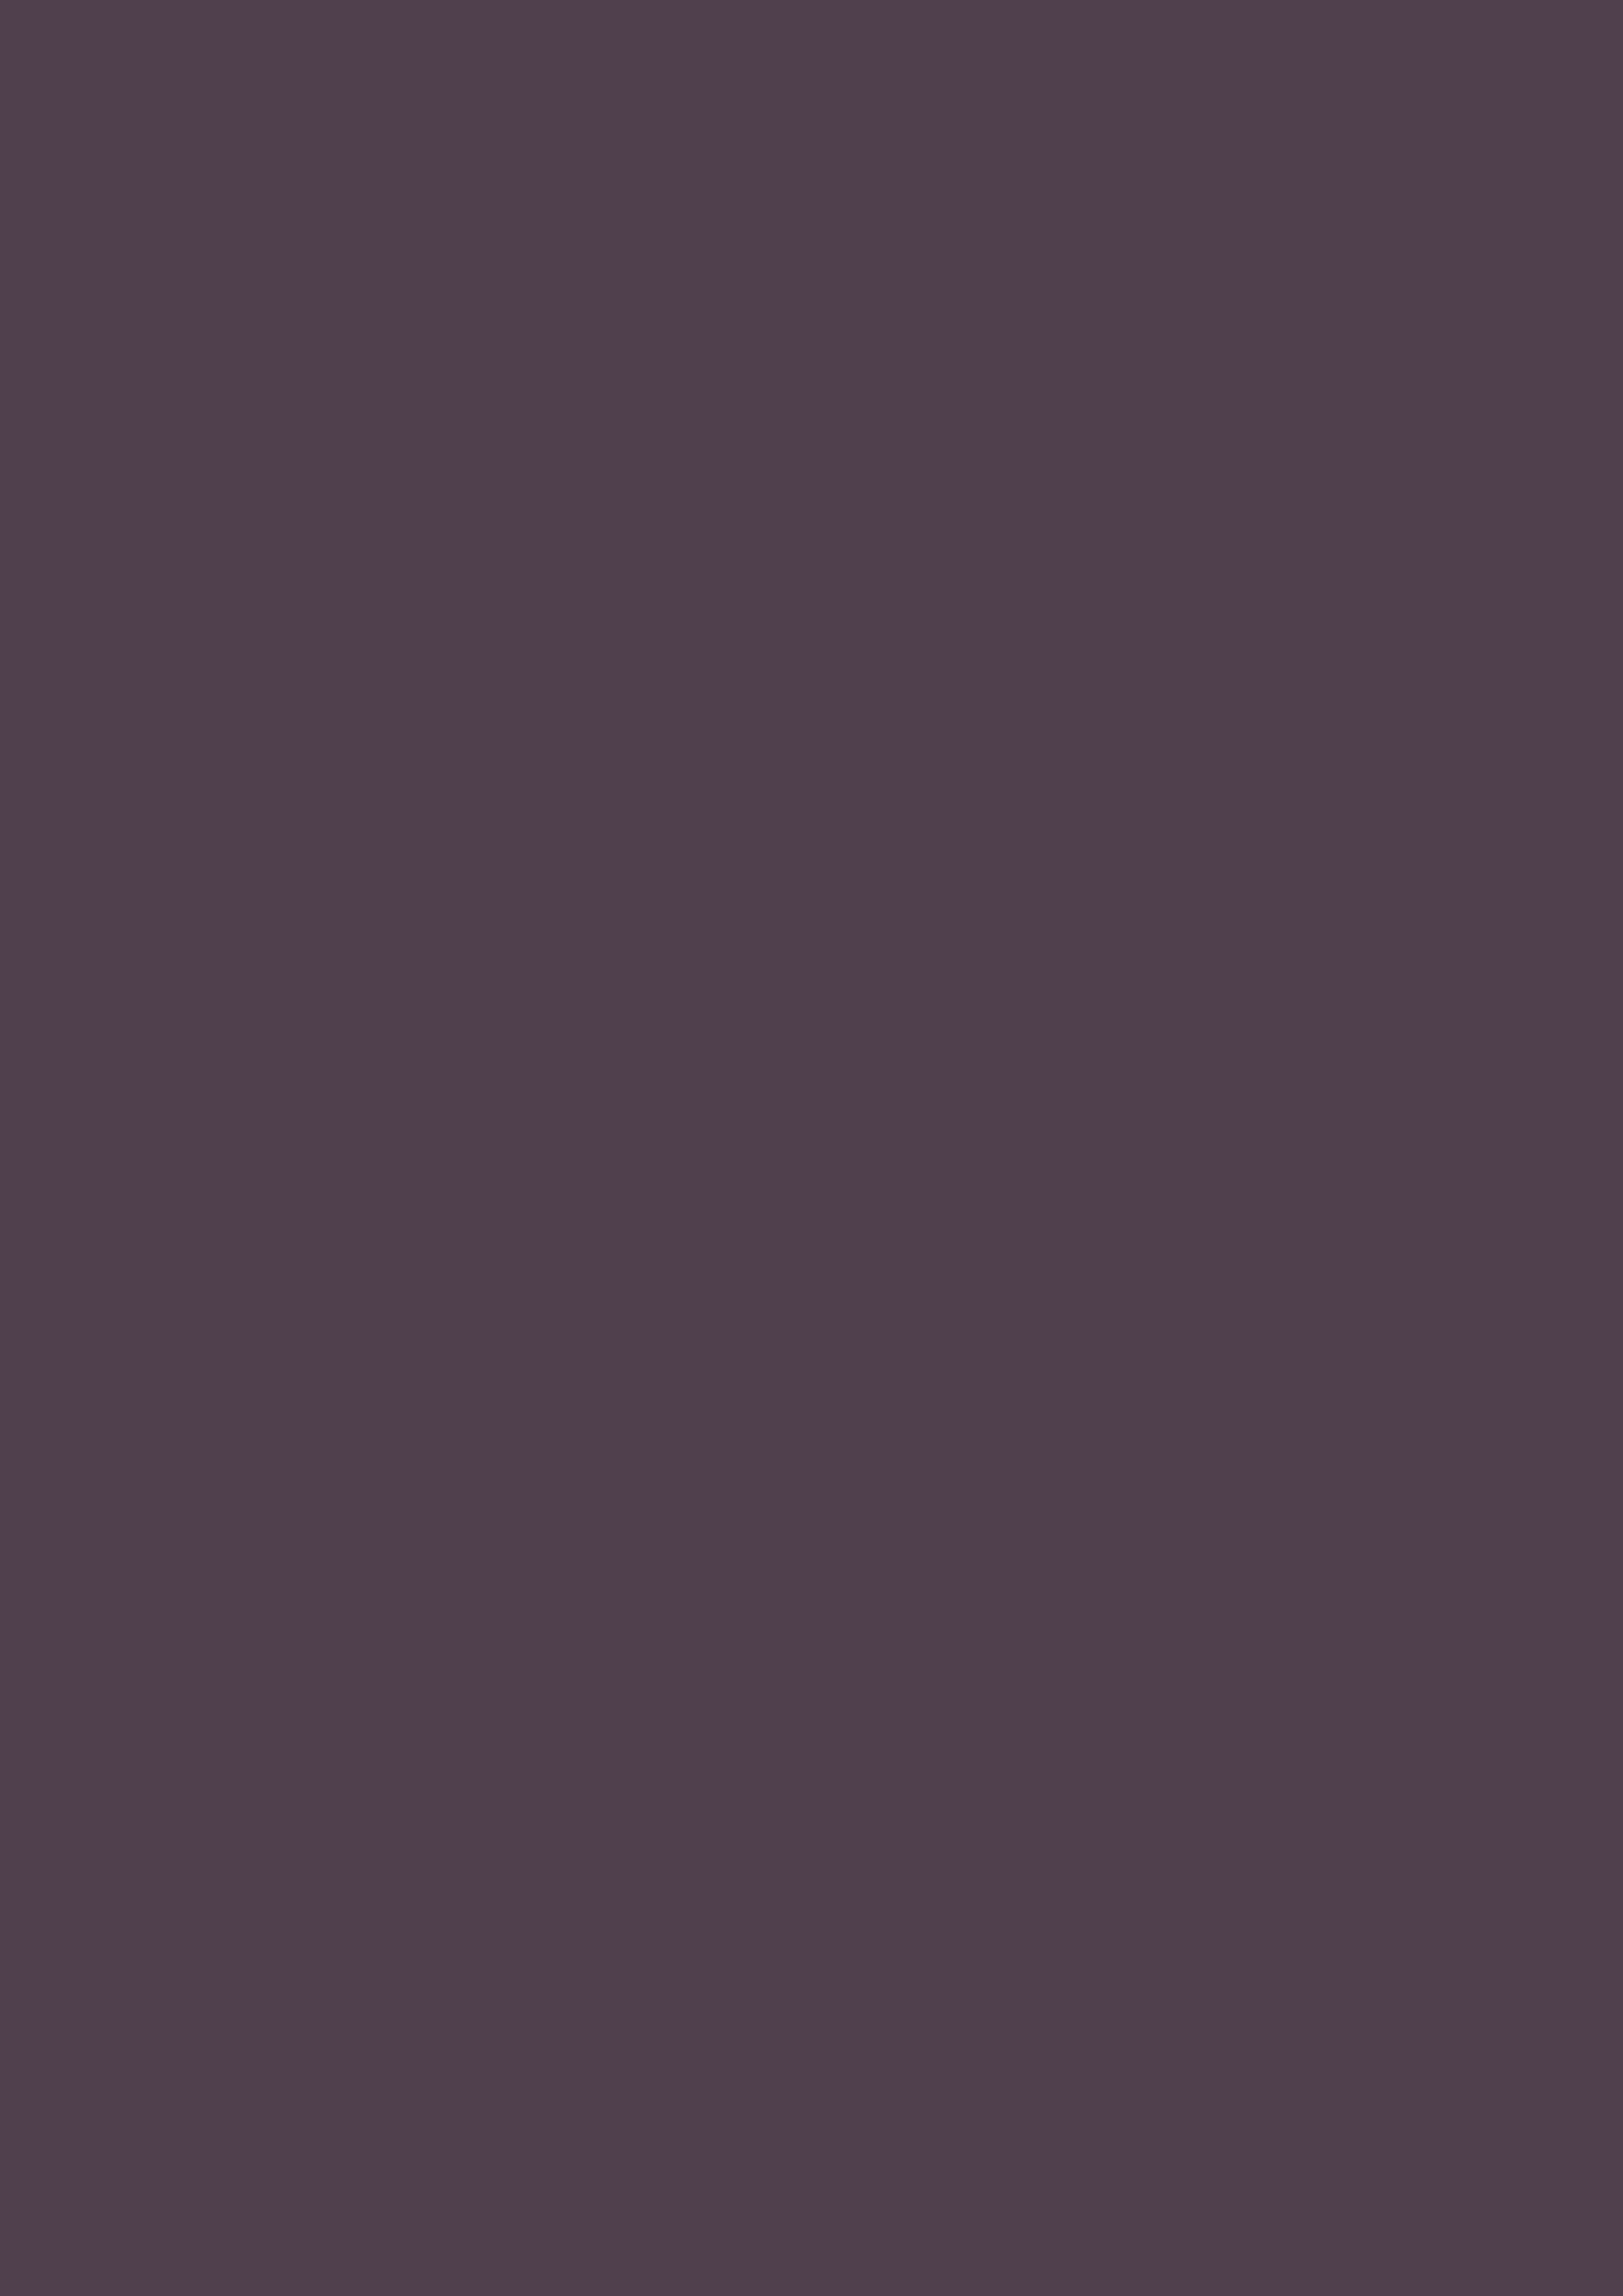 2480x3508 Purple Taupe Solid Color Background